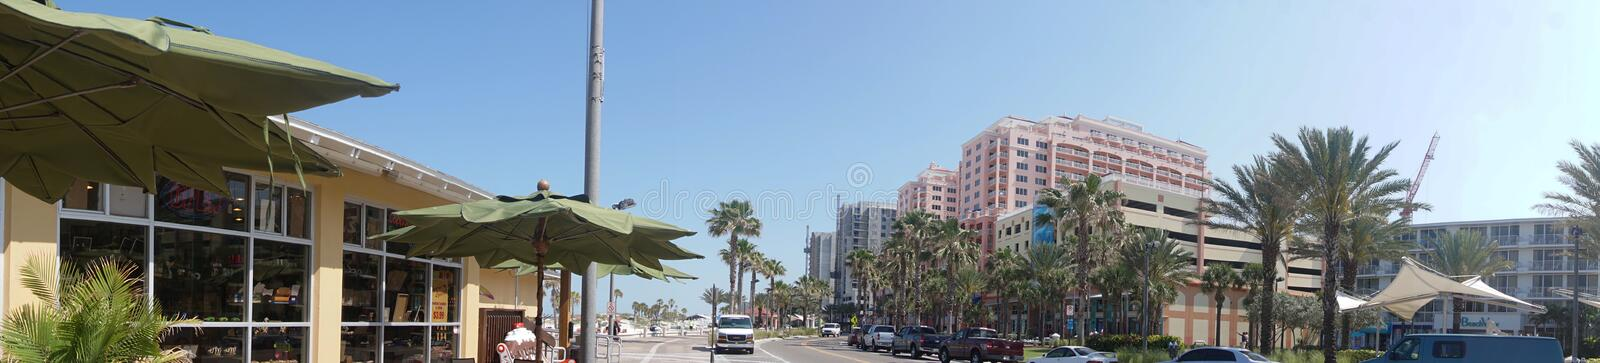 Panorama at Clearwater Beach Florida. Downtown at Clearwater Beach area royalty free stock photography